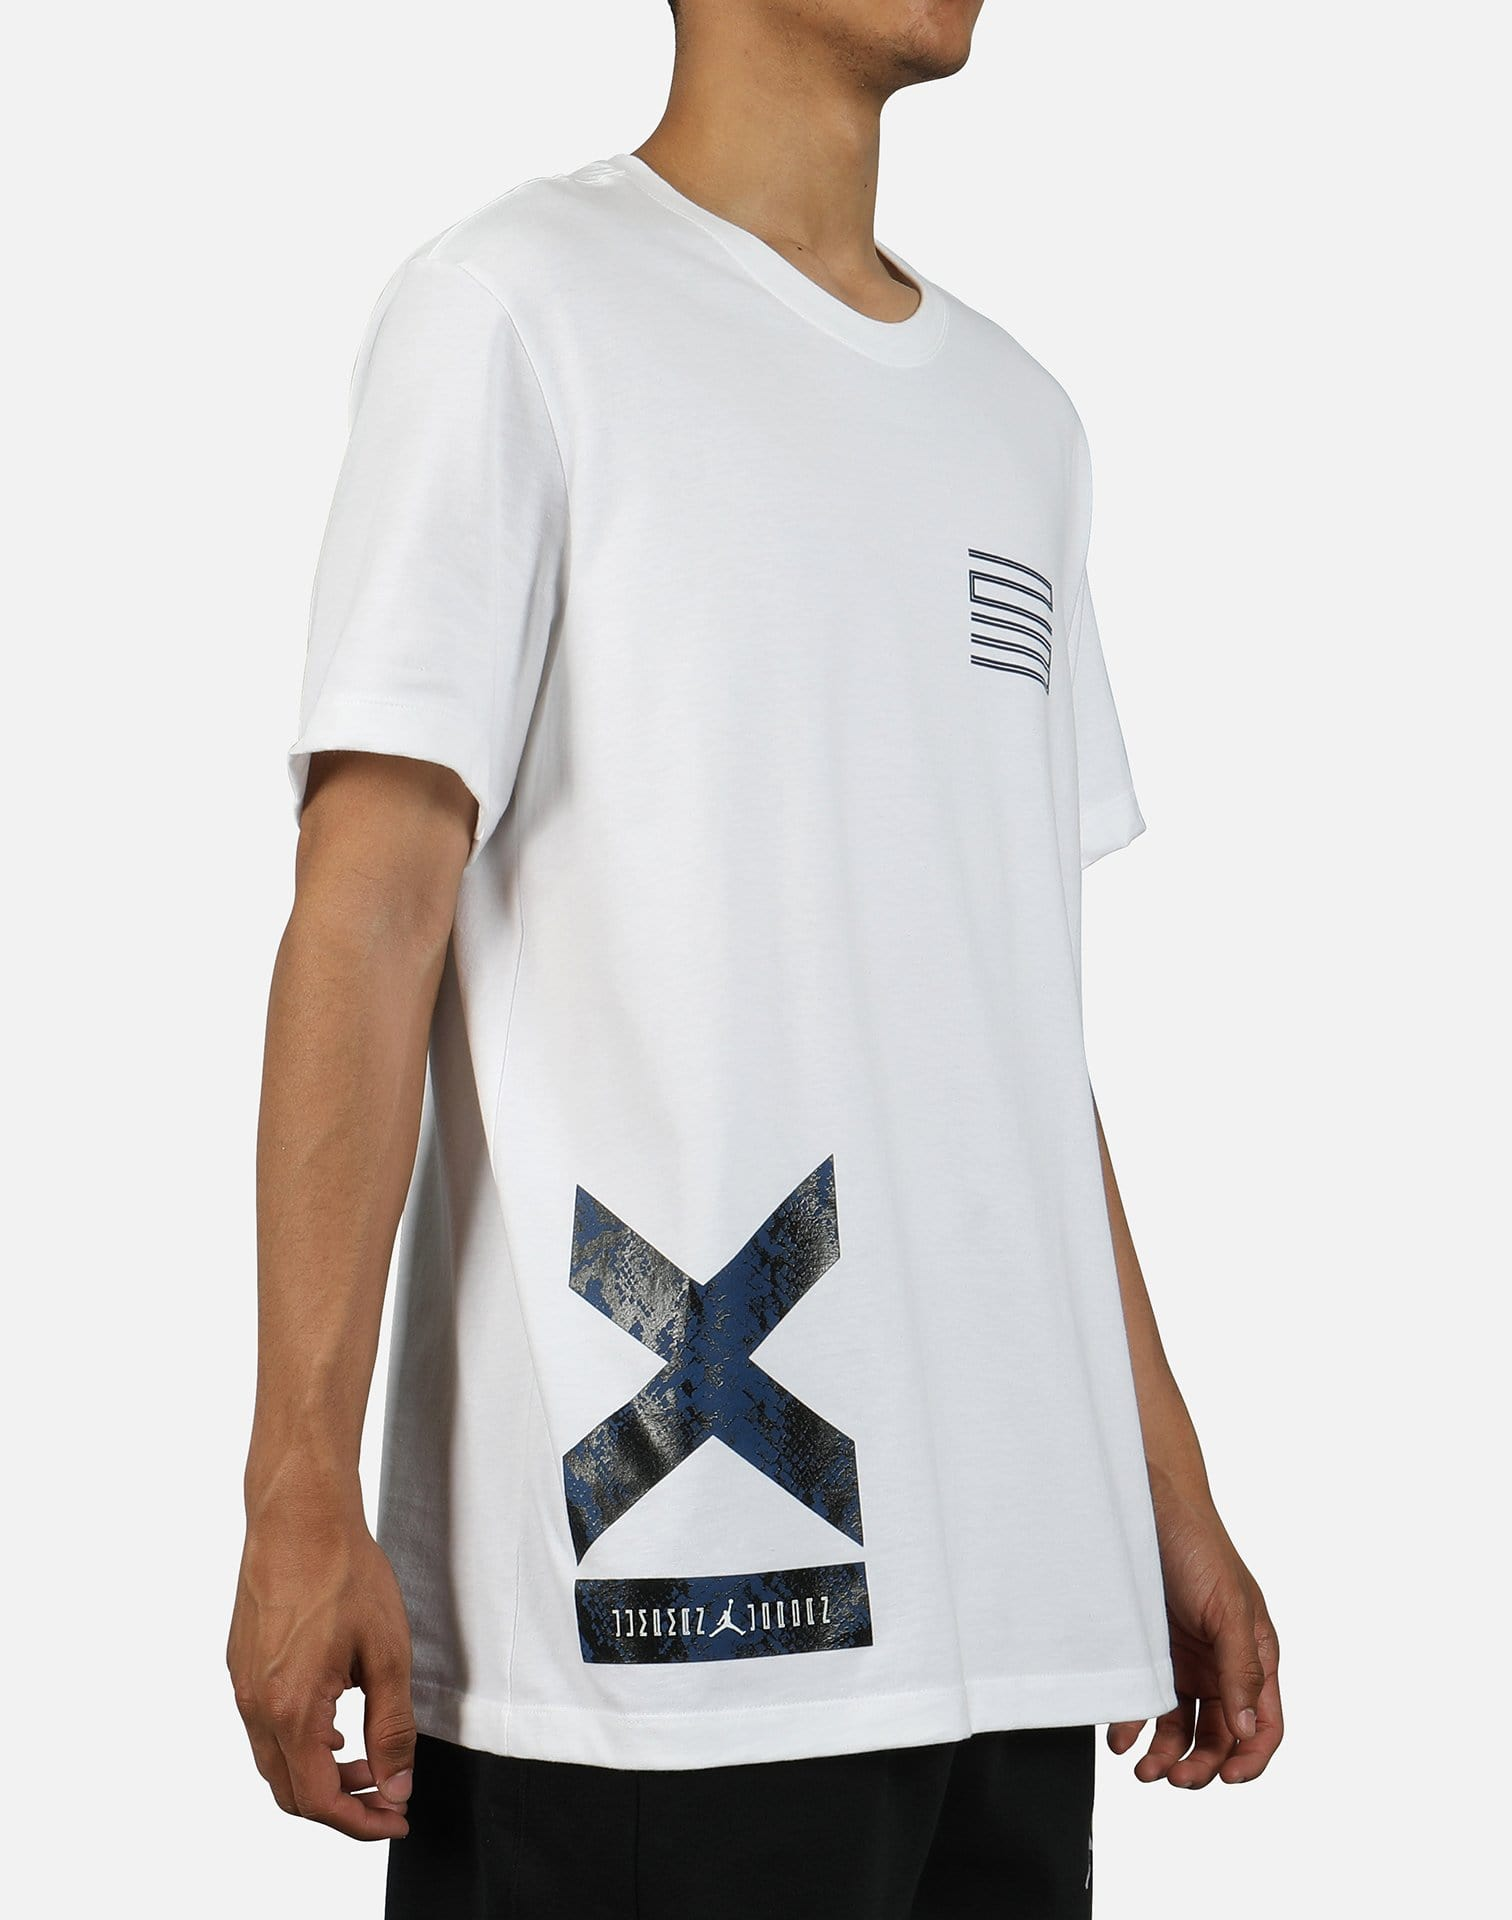 Jordan Men's Air Jordan Retro 11 'Snakeskin' Tee